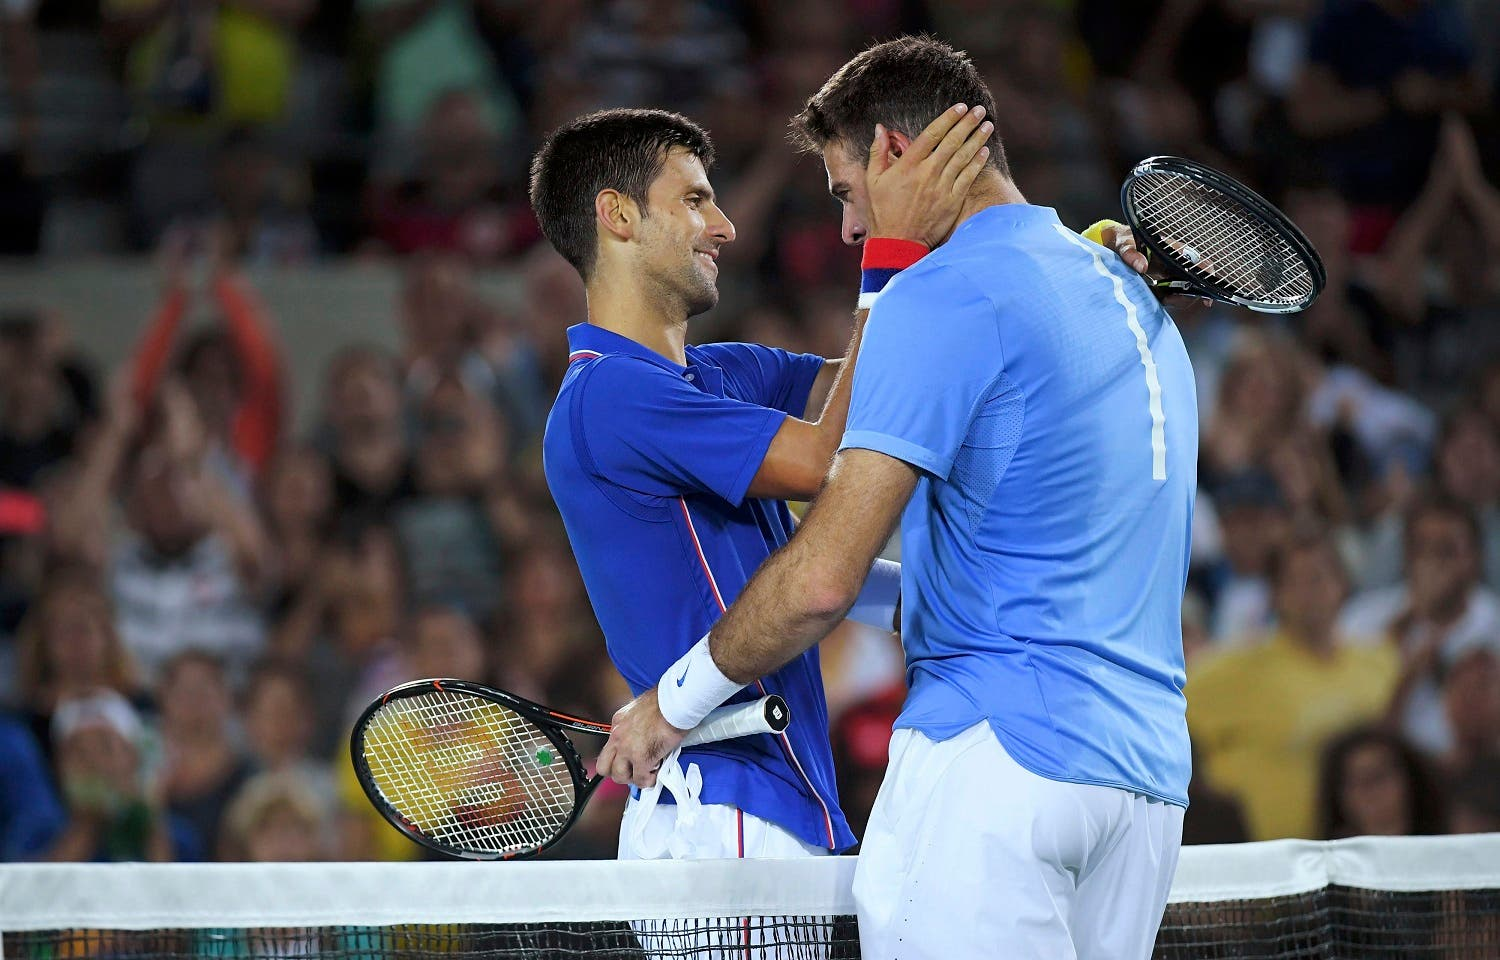 Both players embraced at the net and wept at the end of their centre court duel, played out in front of a raucous Argentine and Serb crowd. (Reuters)